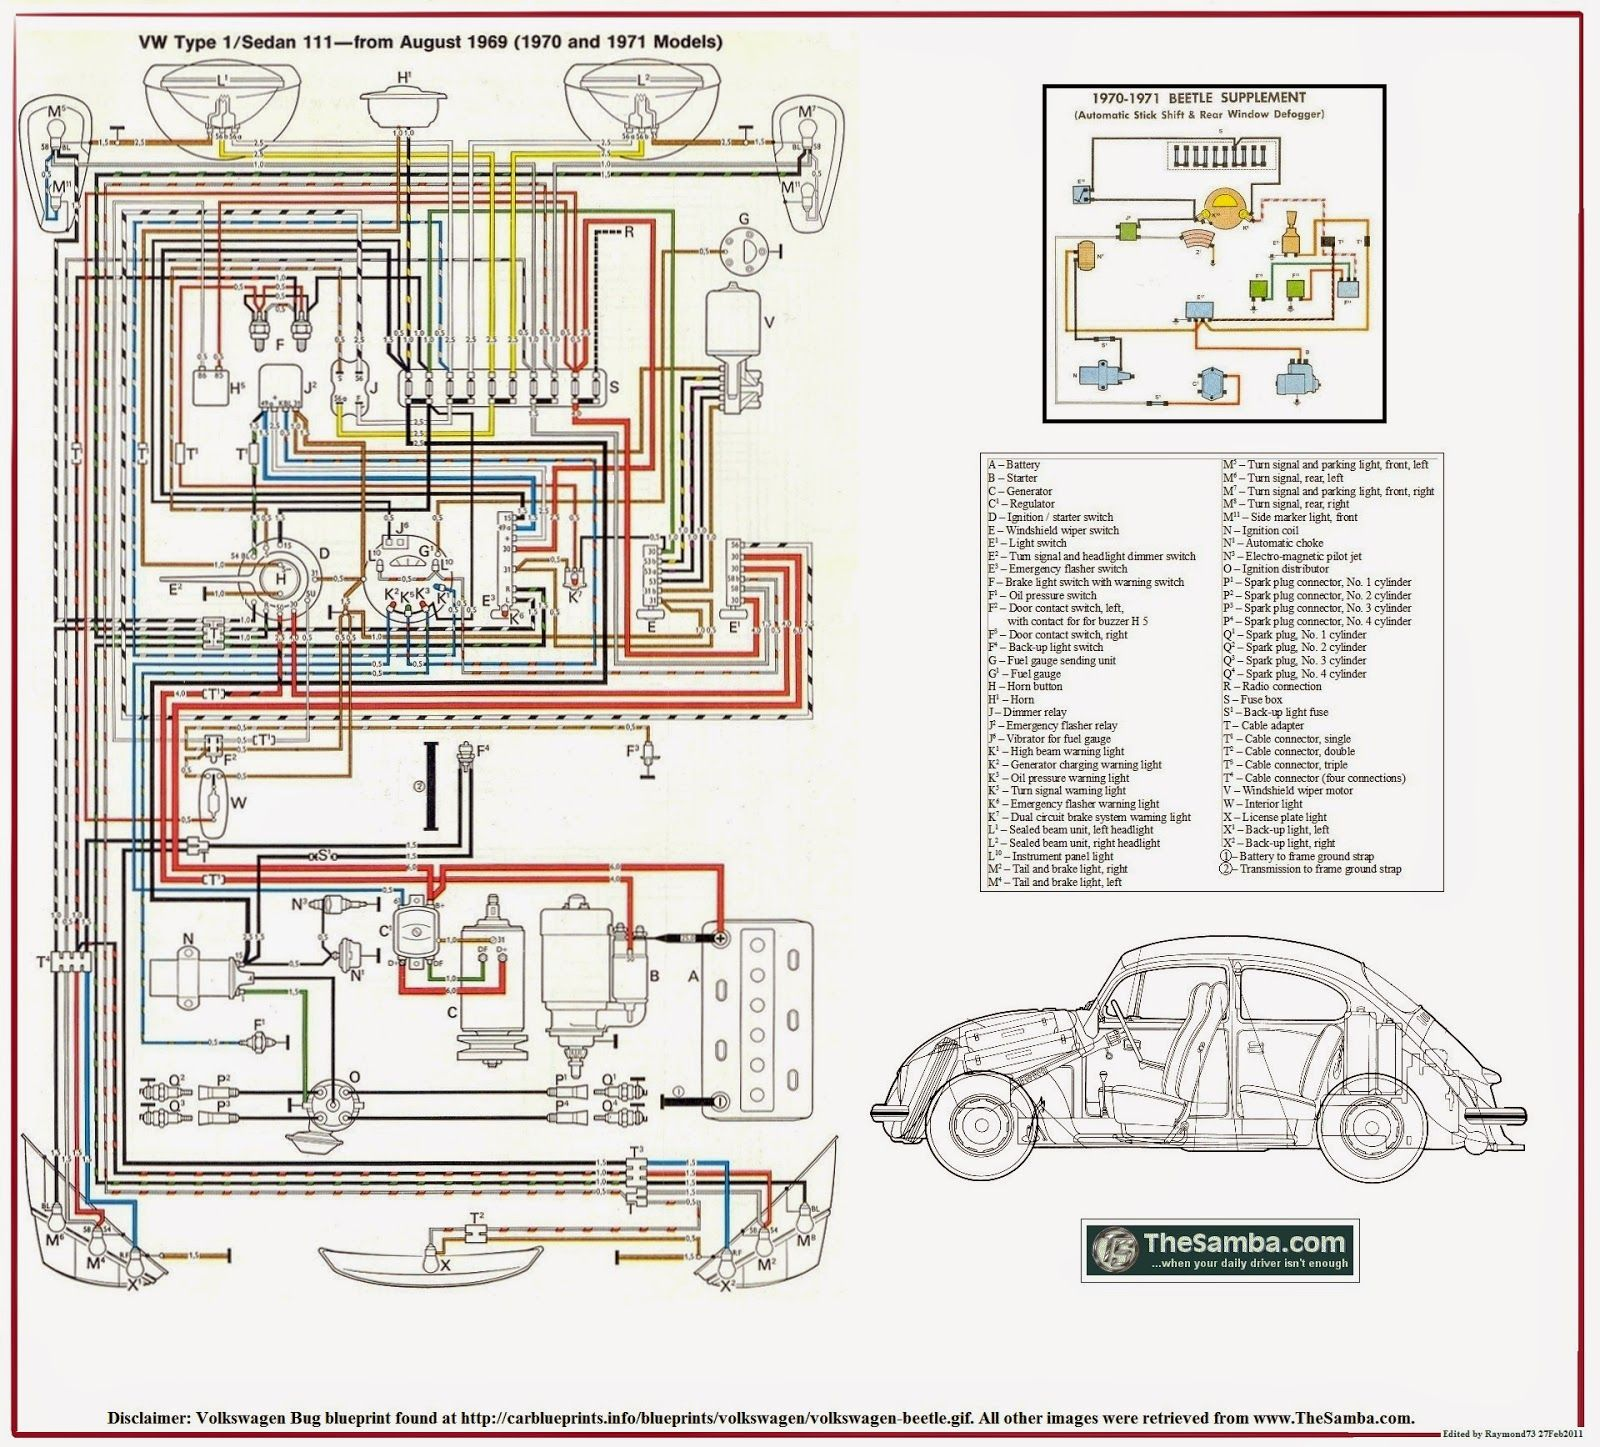 1977 volkswagen beetle ecm wiring data wiring diagrams \u2022 1970 vw beetle engine diagram 1977 volkswagen beetle wiring diagram electrical work wiring diagram u2022 rh wiringdiagramshop today 1990 volkswagen beetle